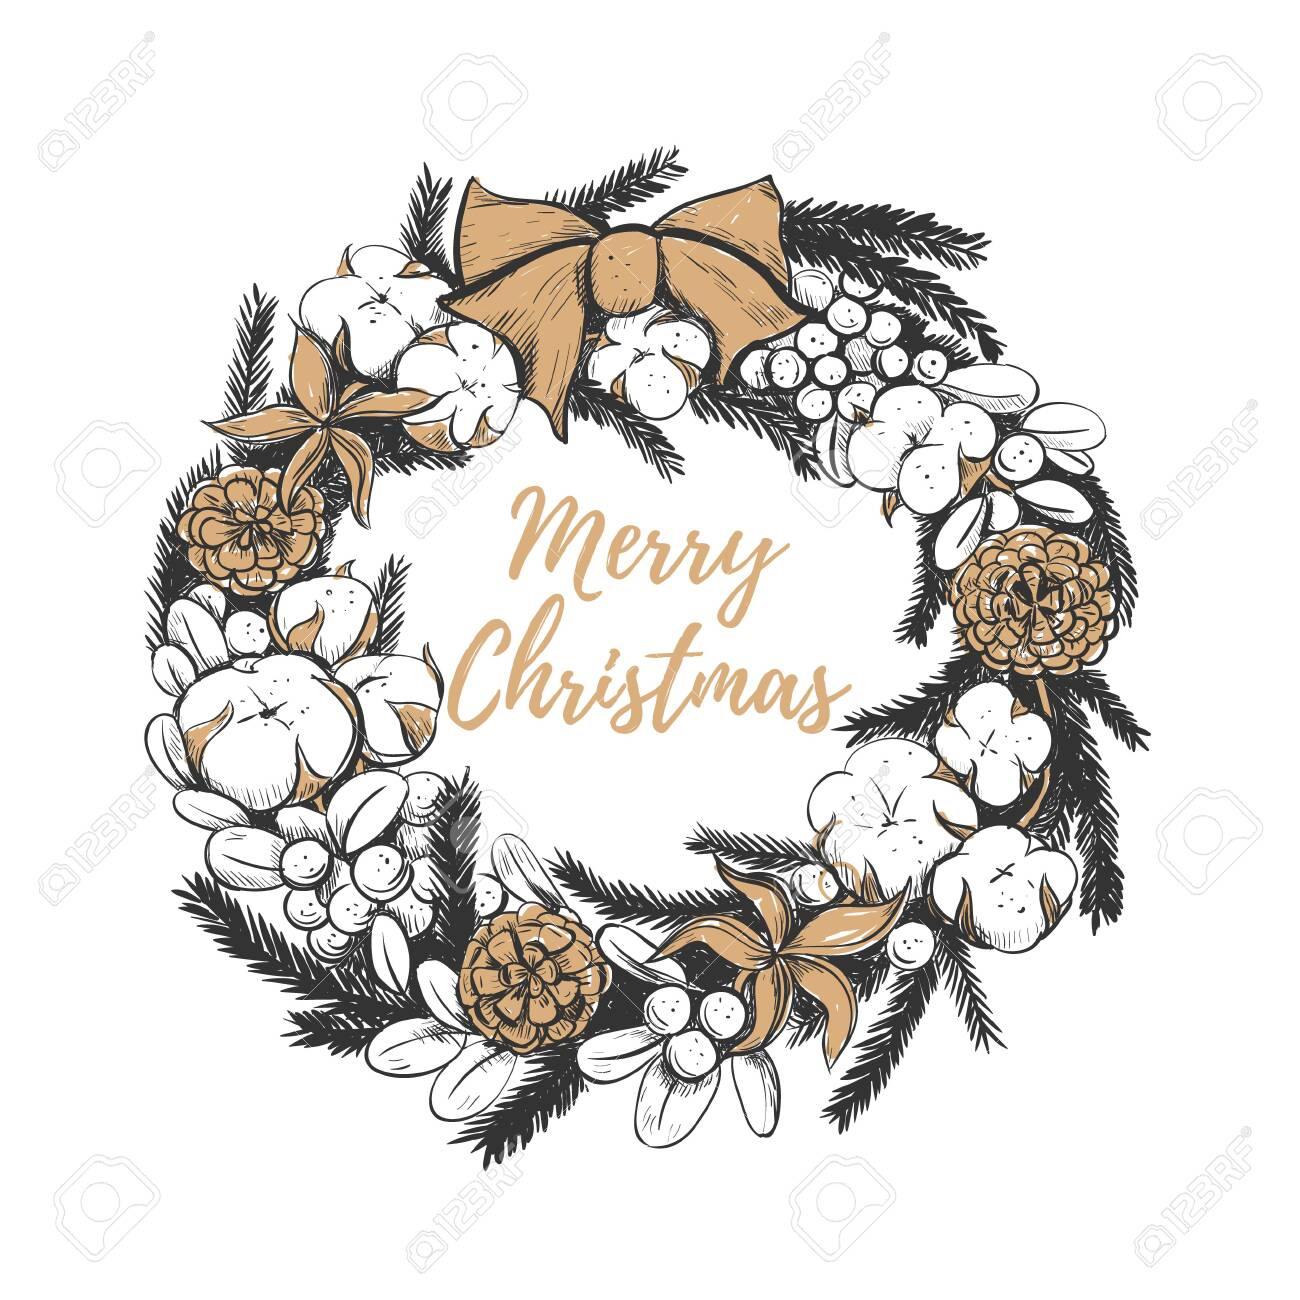 Christmas Wreath Vector.Merry Christmas Wreath Vector Illustration Christmas Wreath